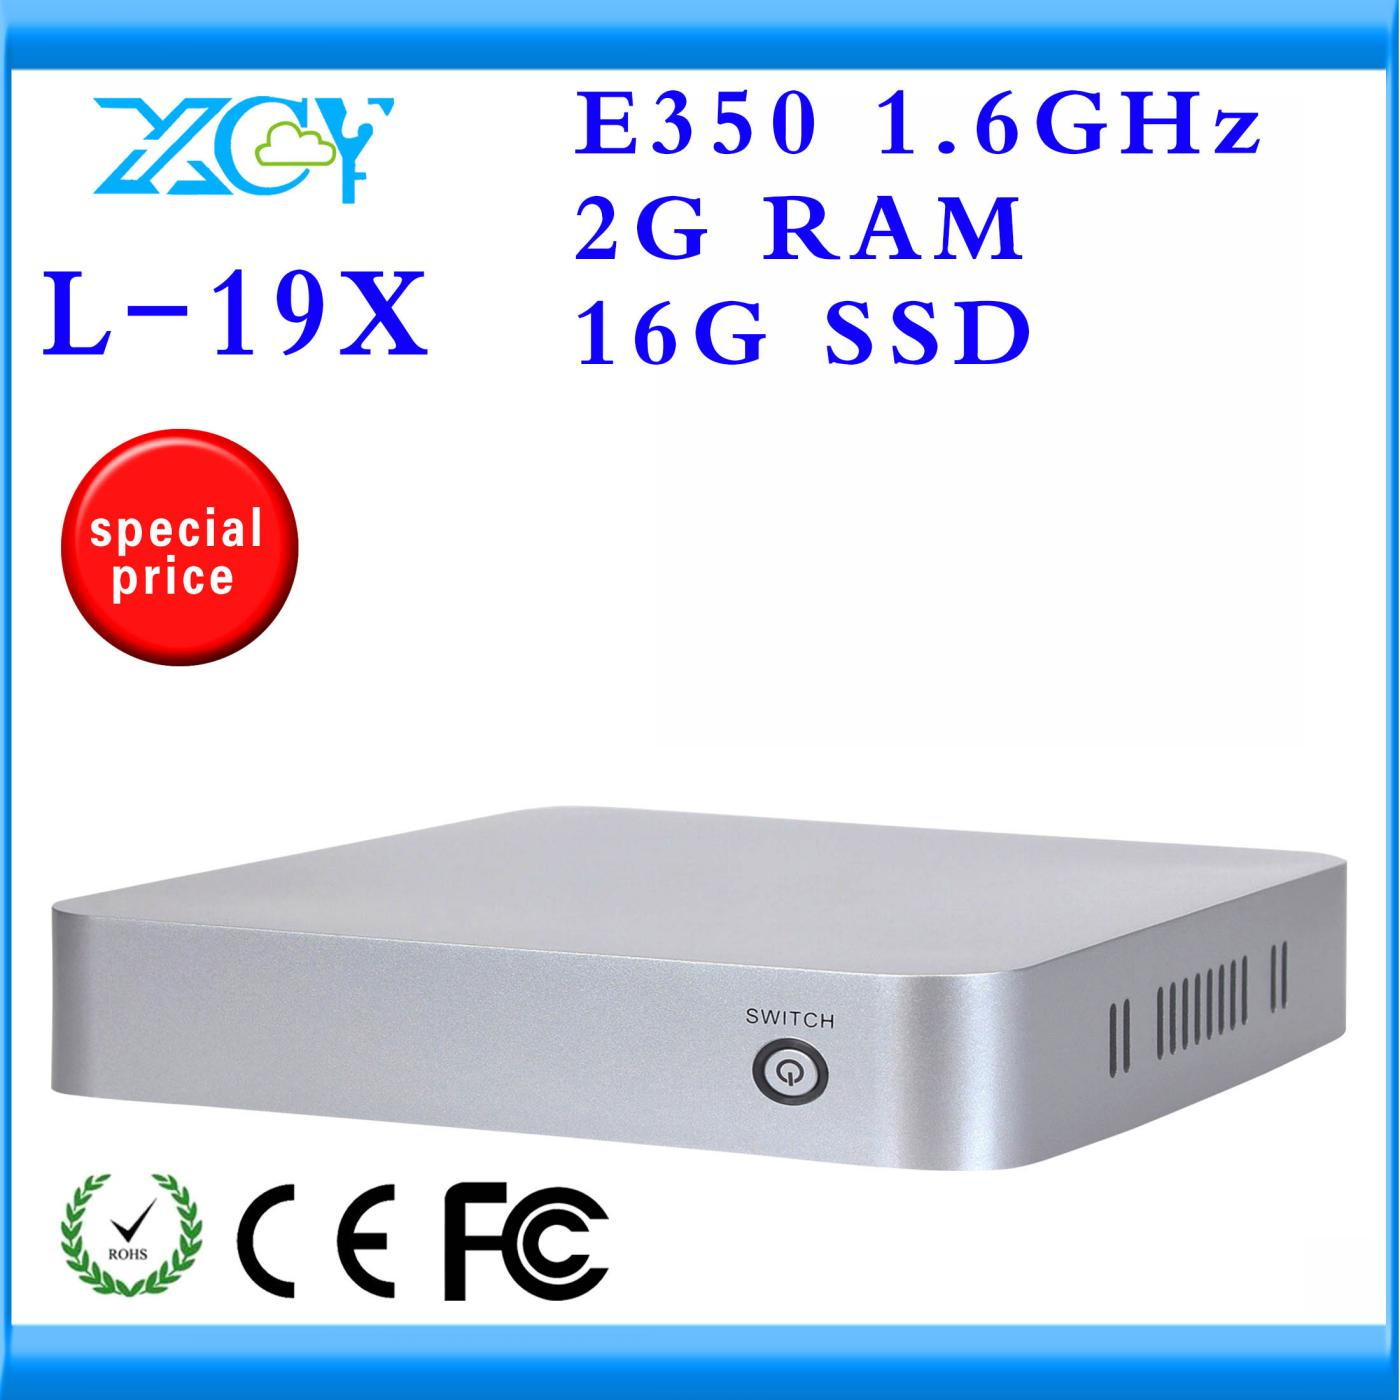 XCY thin client atom desktop pc XCY L-19X AMD E350 Dual core 1.6GHZ 19.7*19.7*4cm Dimension support full-screen movies(China (Mainland))